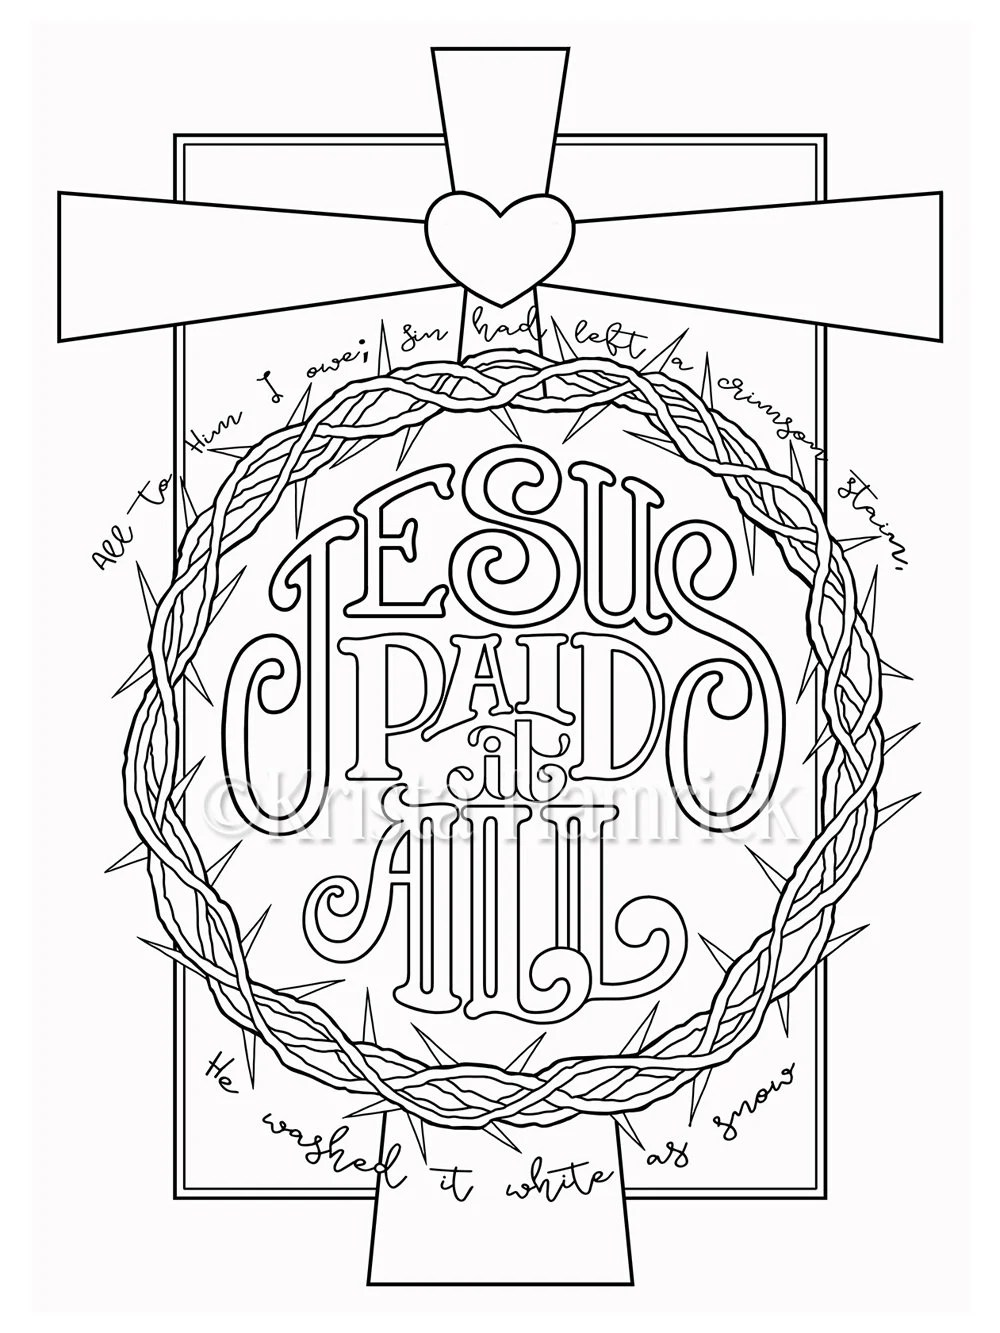 Jesus Paid it All coloring page in two sizes: 8.5X11 Bible